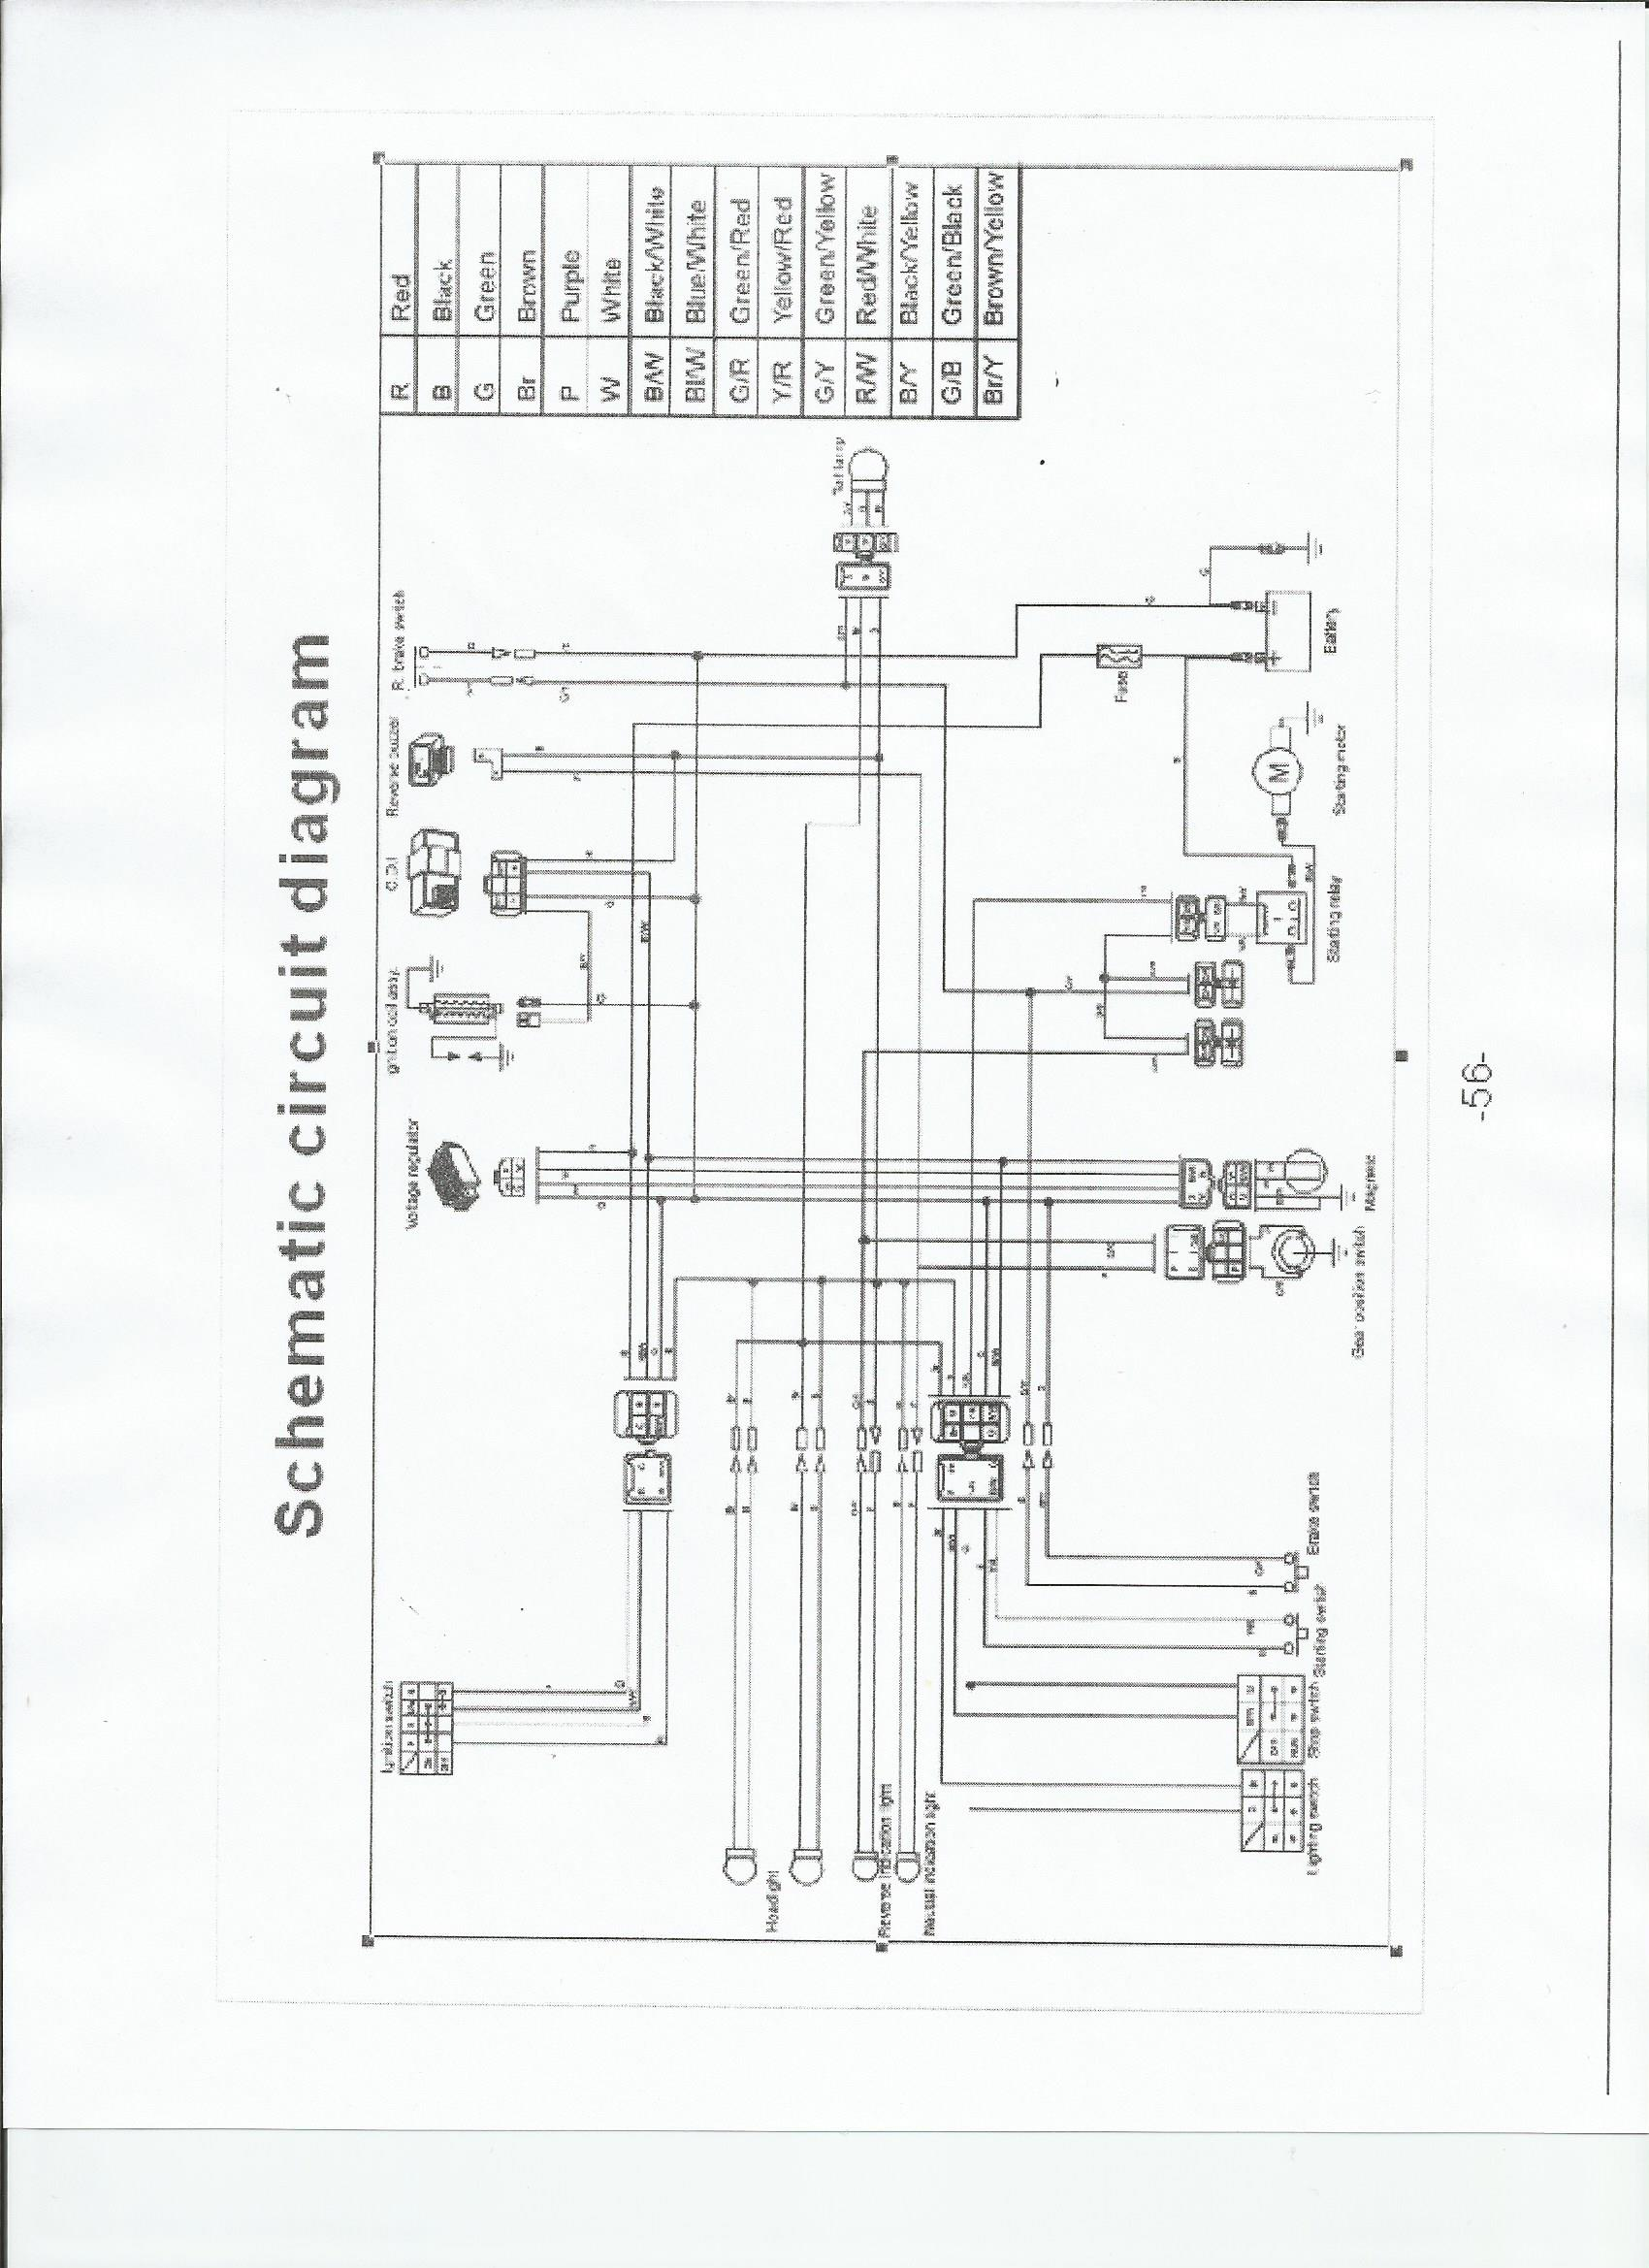 Taotao Mini And Youth Atv Wiring Schematic Familygokarts Support Honda Motorcycle Wiring Diagrams Honda 4 Wheeler Wiring Schematic